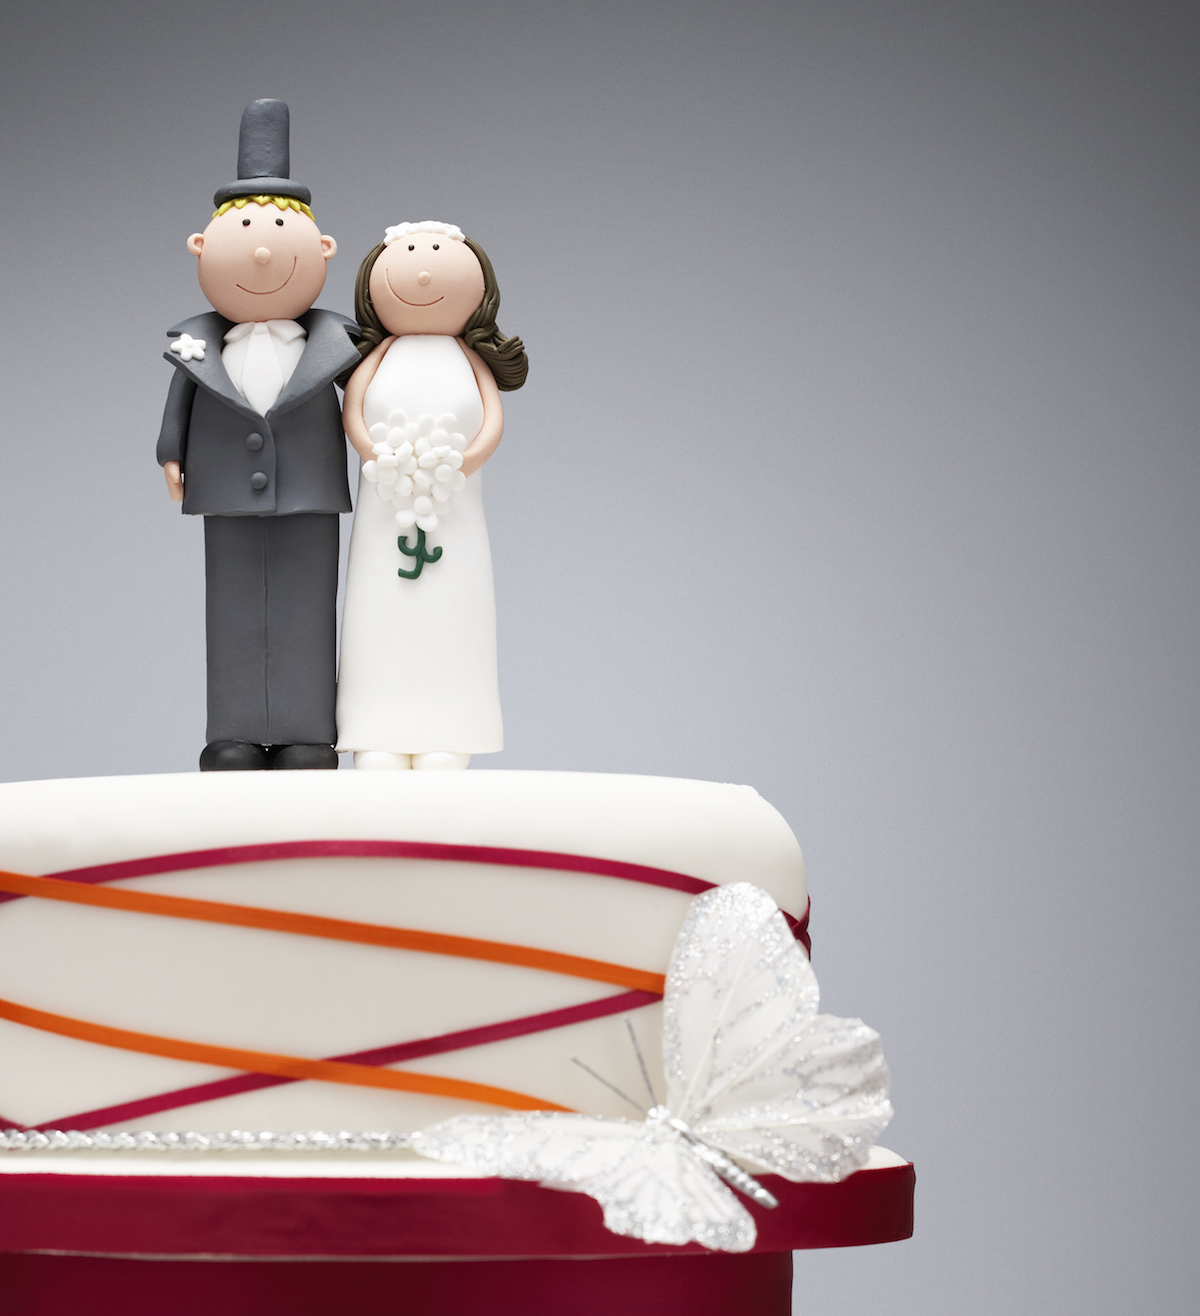 How to Freeze Your Wedding Cake Topper   Boston Magazine Comical bride and groom figurines on top of wedding cake via Shutterstock